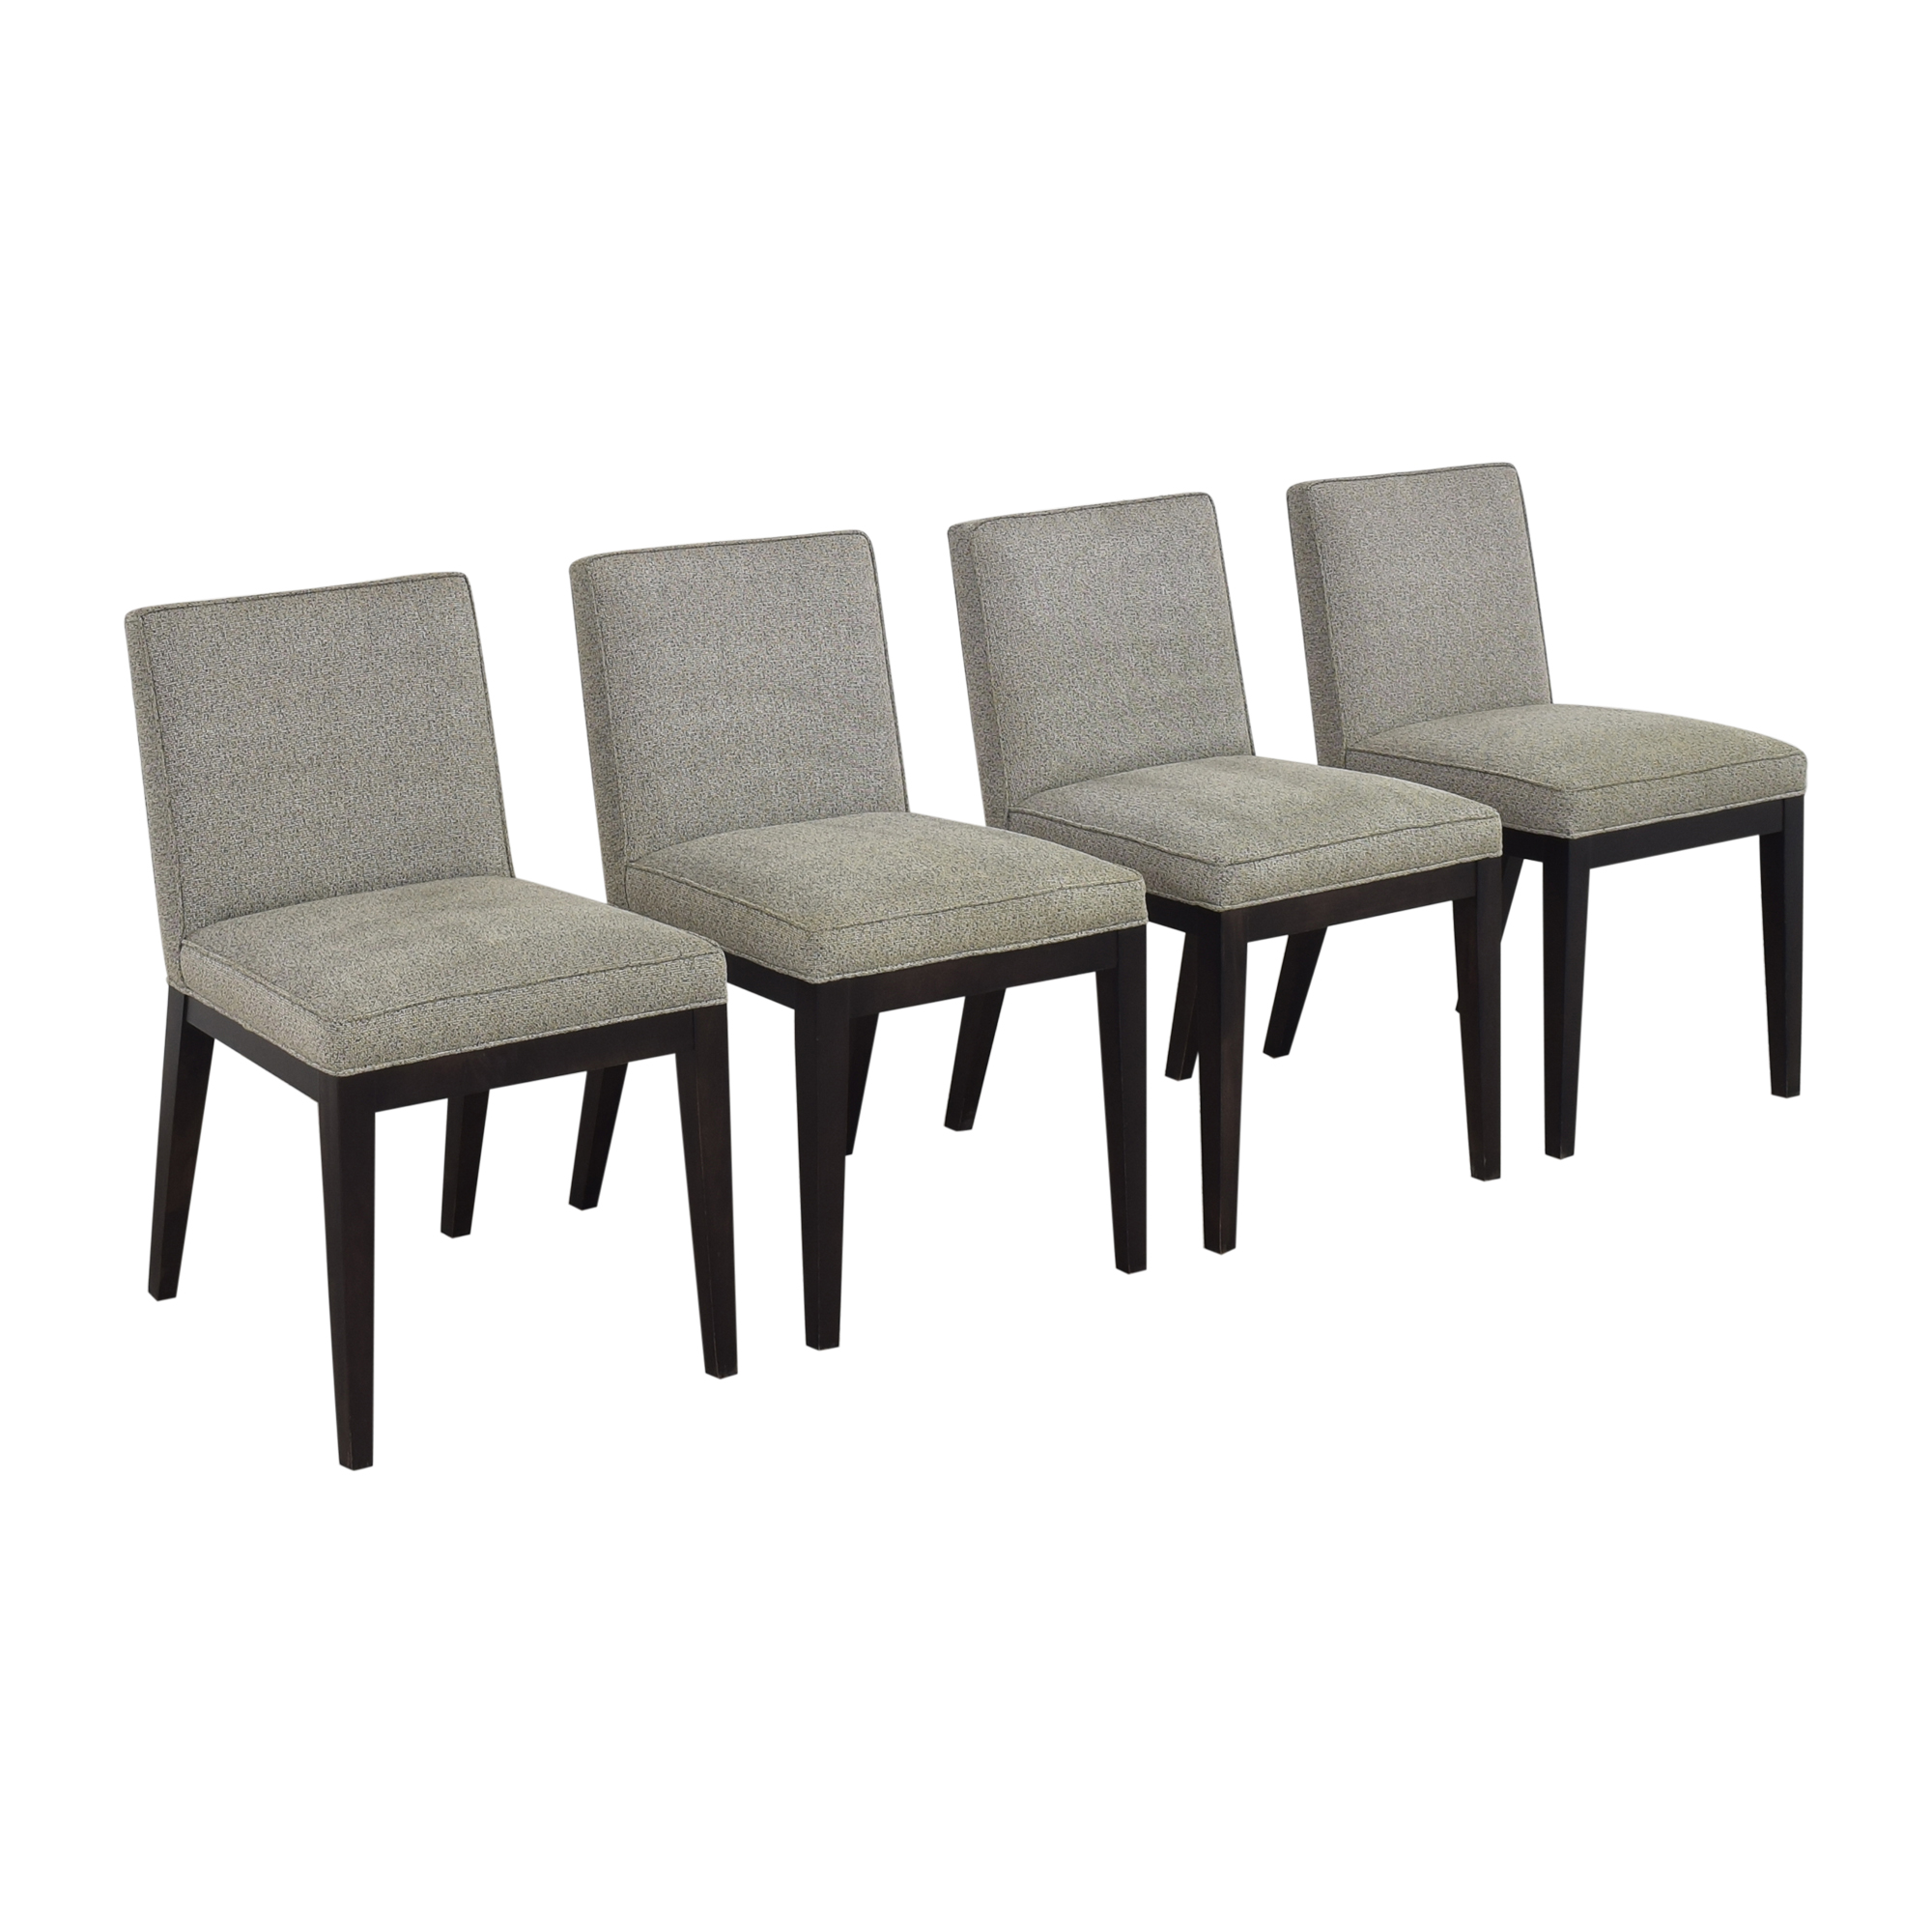 shop Room & Board Room & Board Ansel Dining Side Chairs online